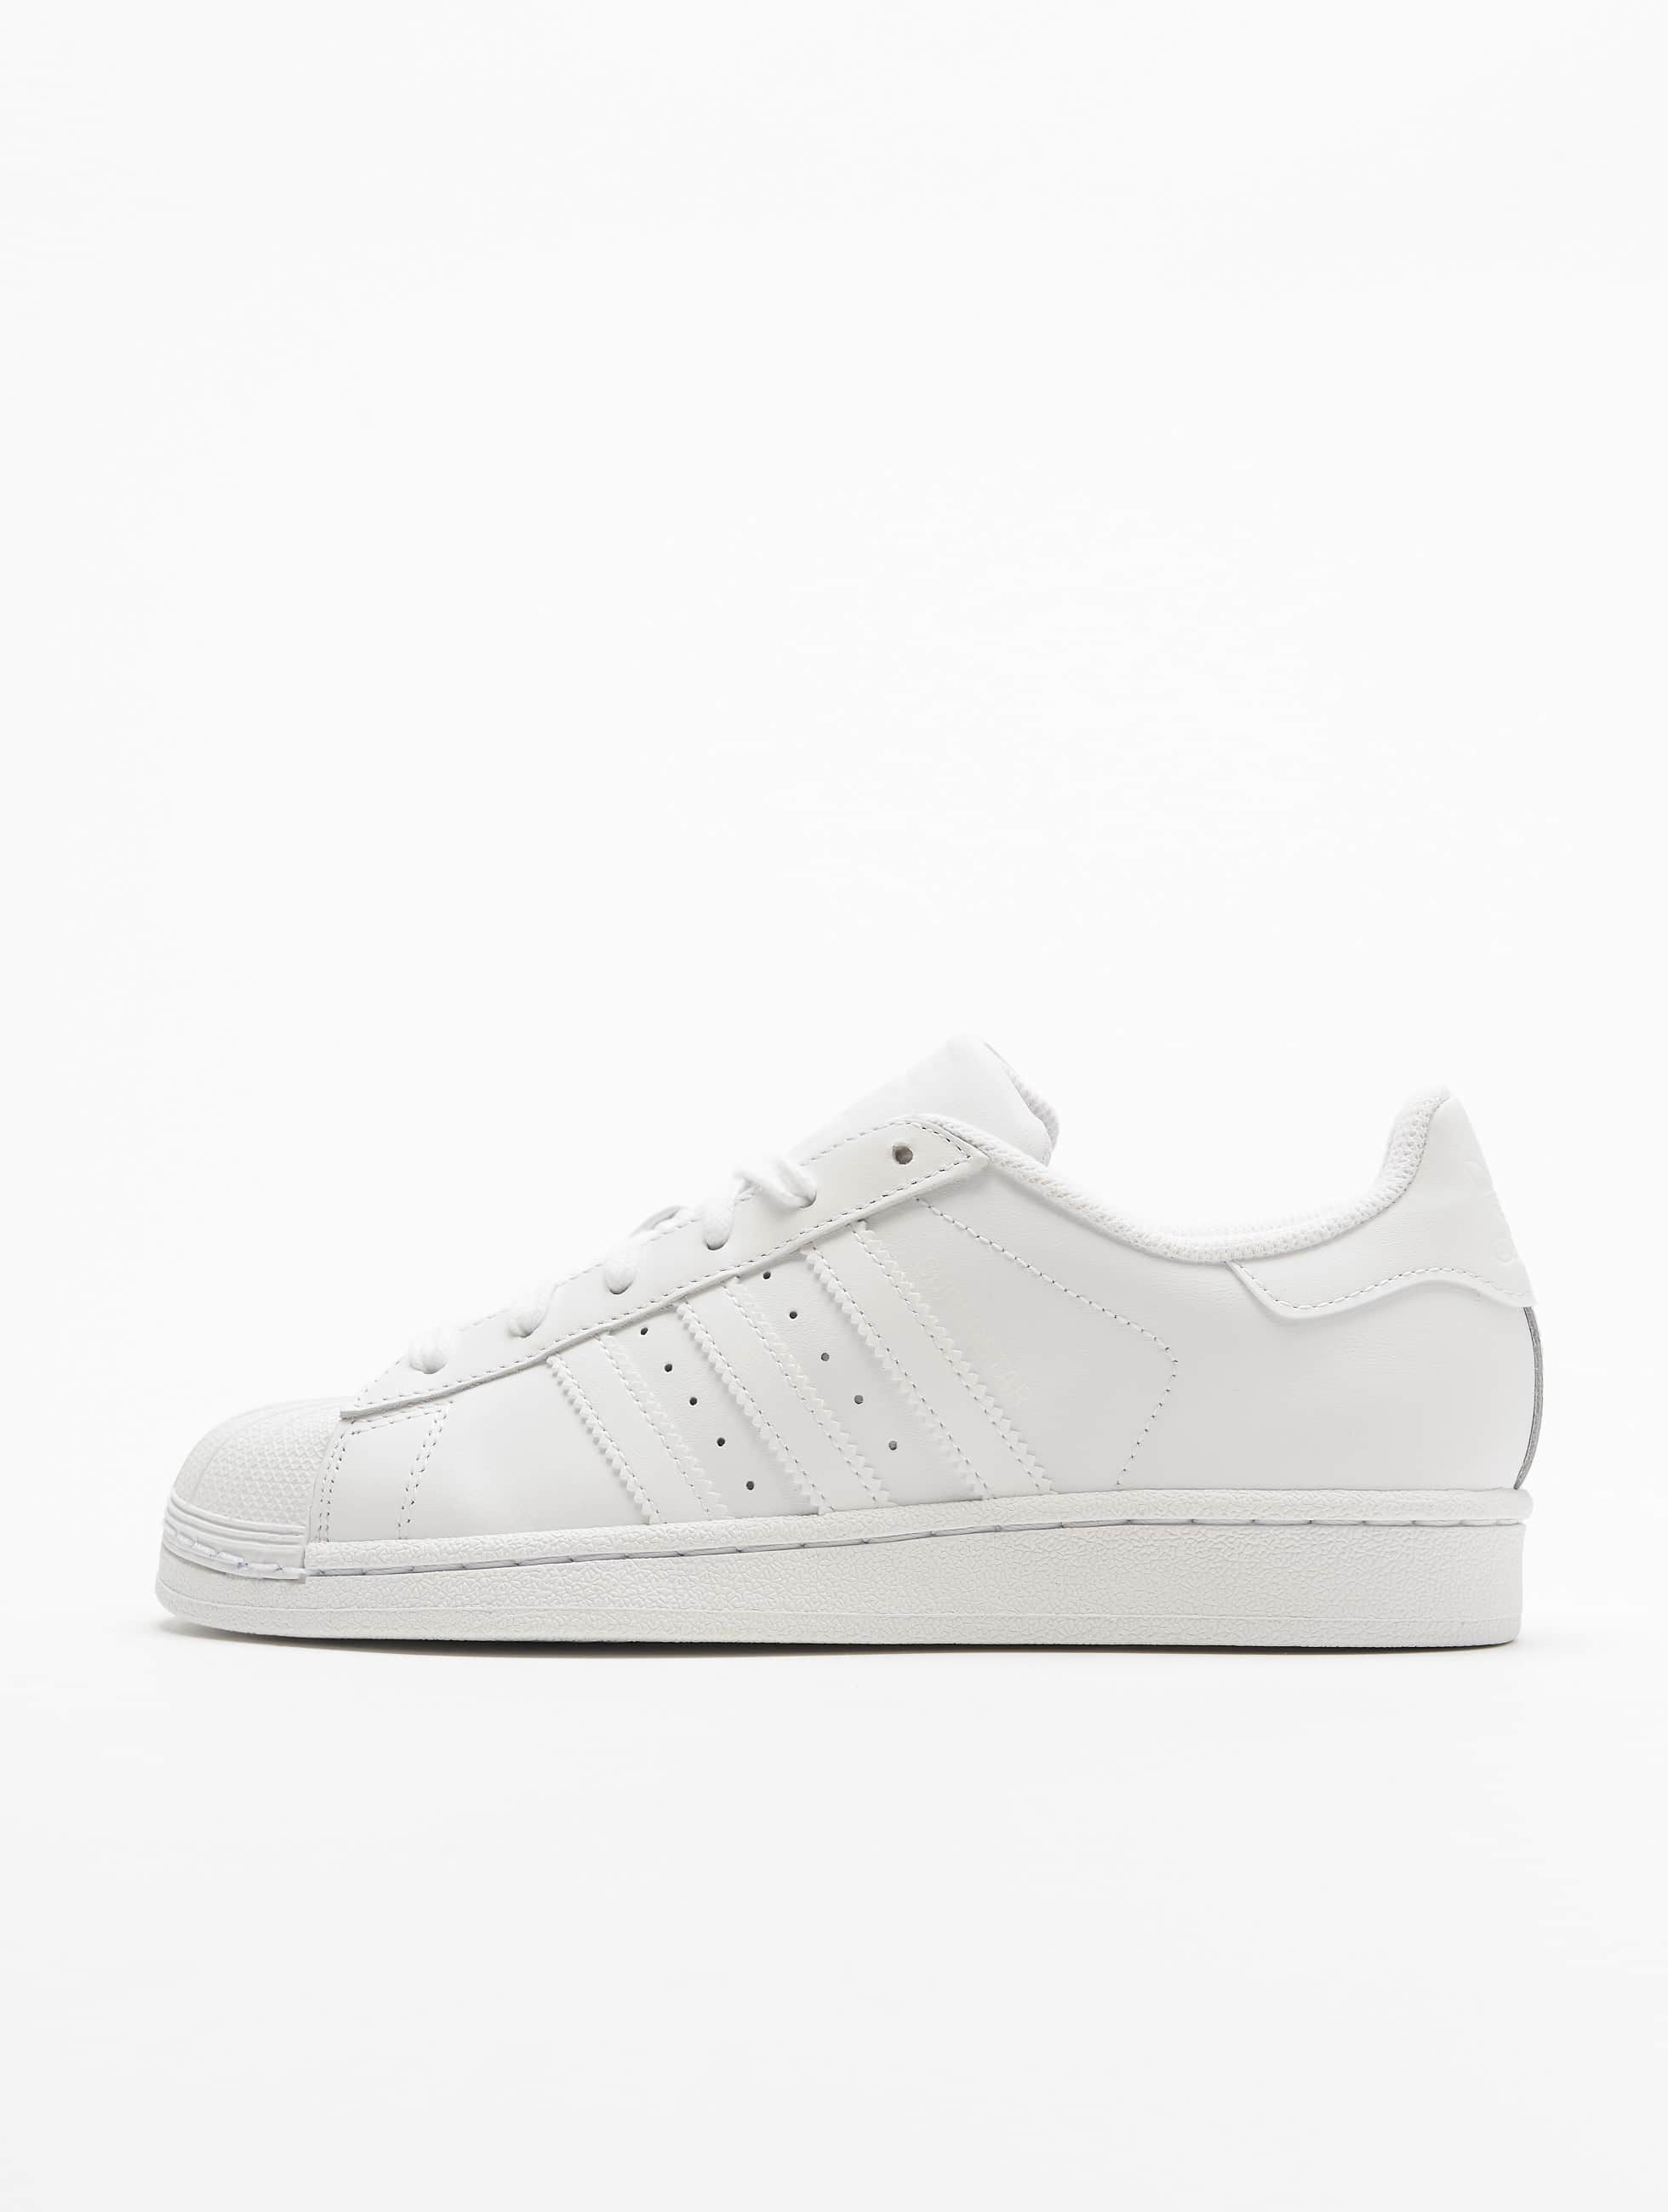 Adidas Superstar Sneakers White Foundation White Superstar Sneakers Adidas Foundation Superstar Foundation Sneakers Adidas LqMpVGzSU